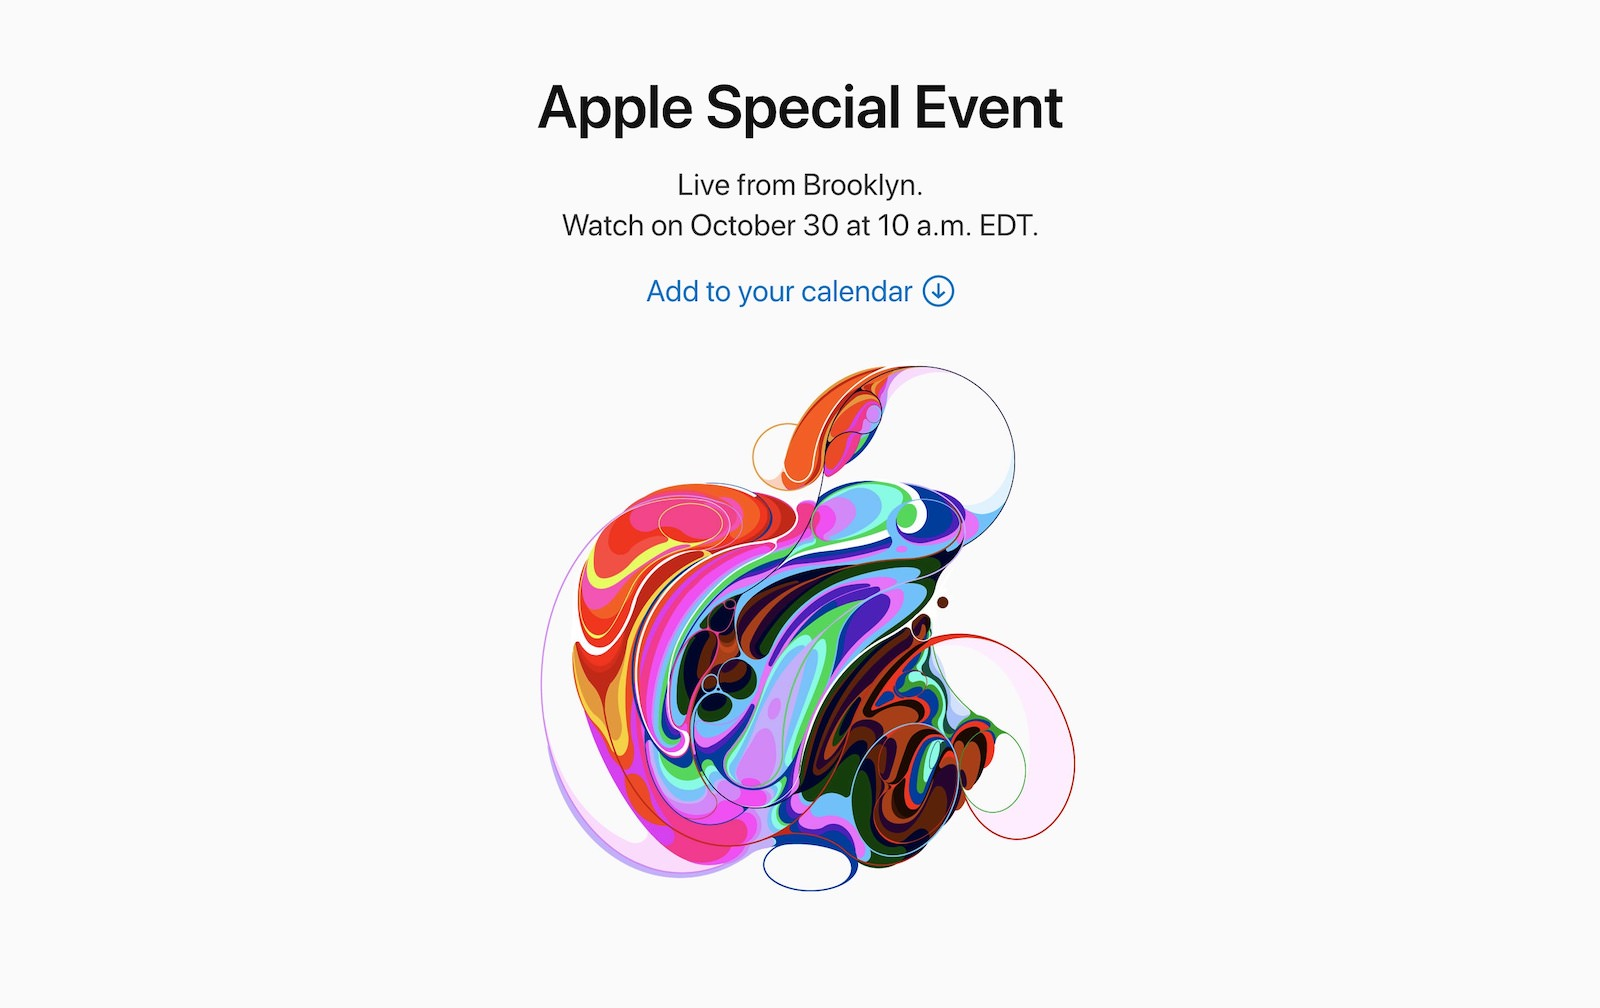 Apple Live Event on Twitter